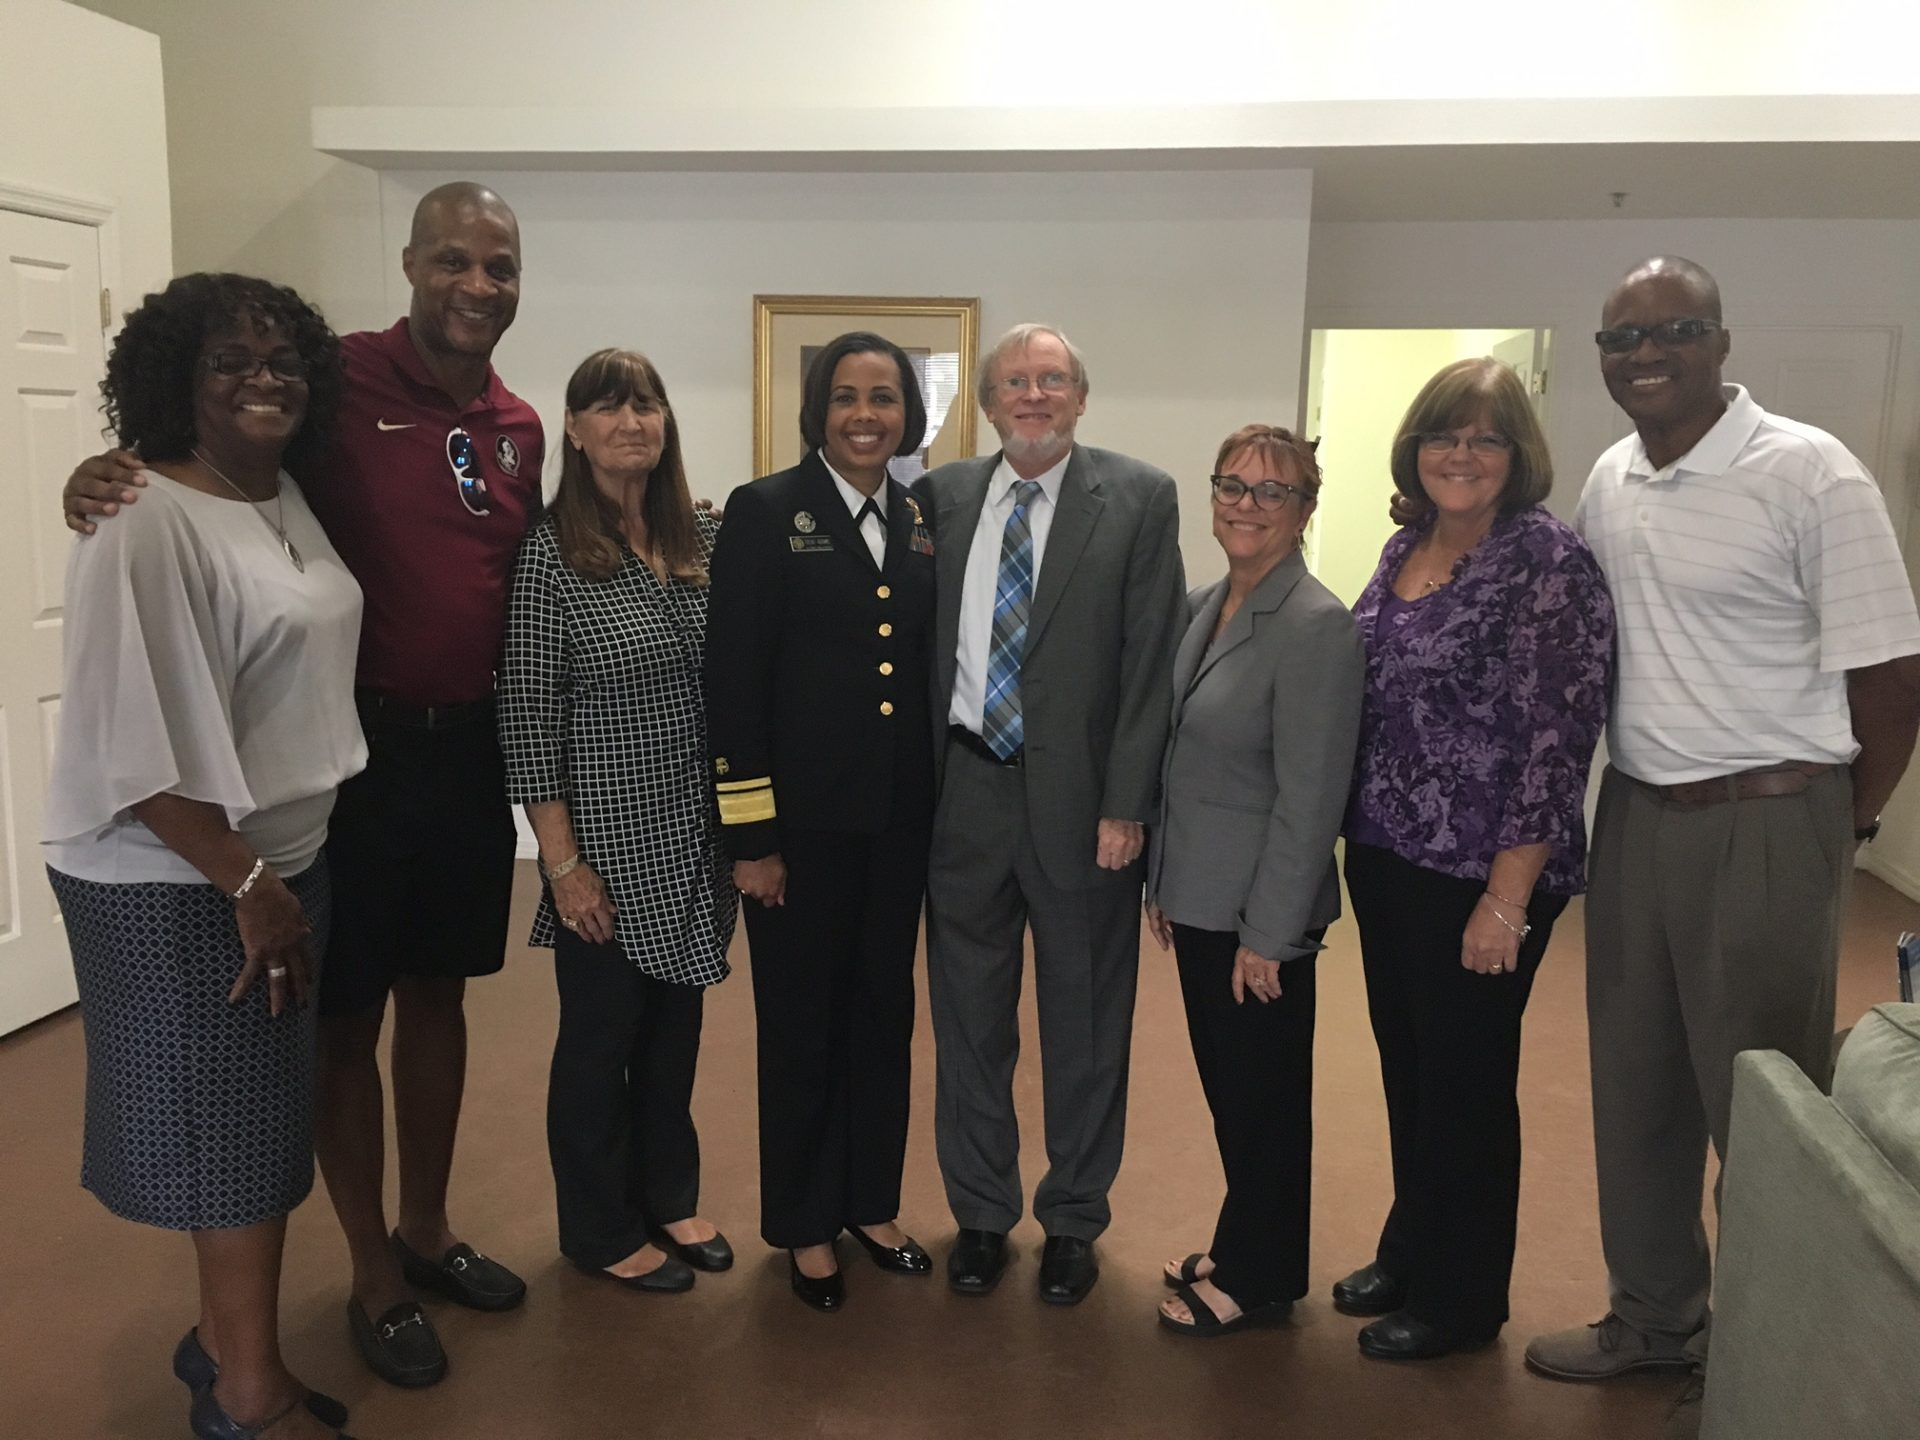 US Deputy Surgeon General Visits Darryl Strawberry Recovery Center